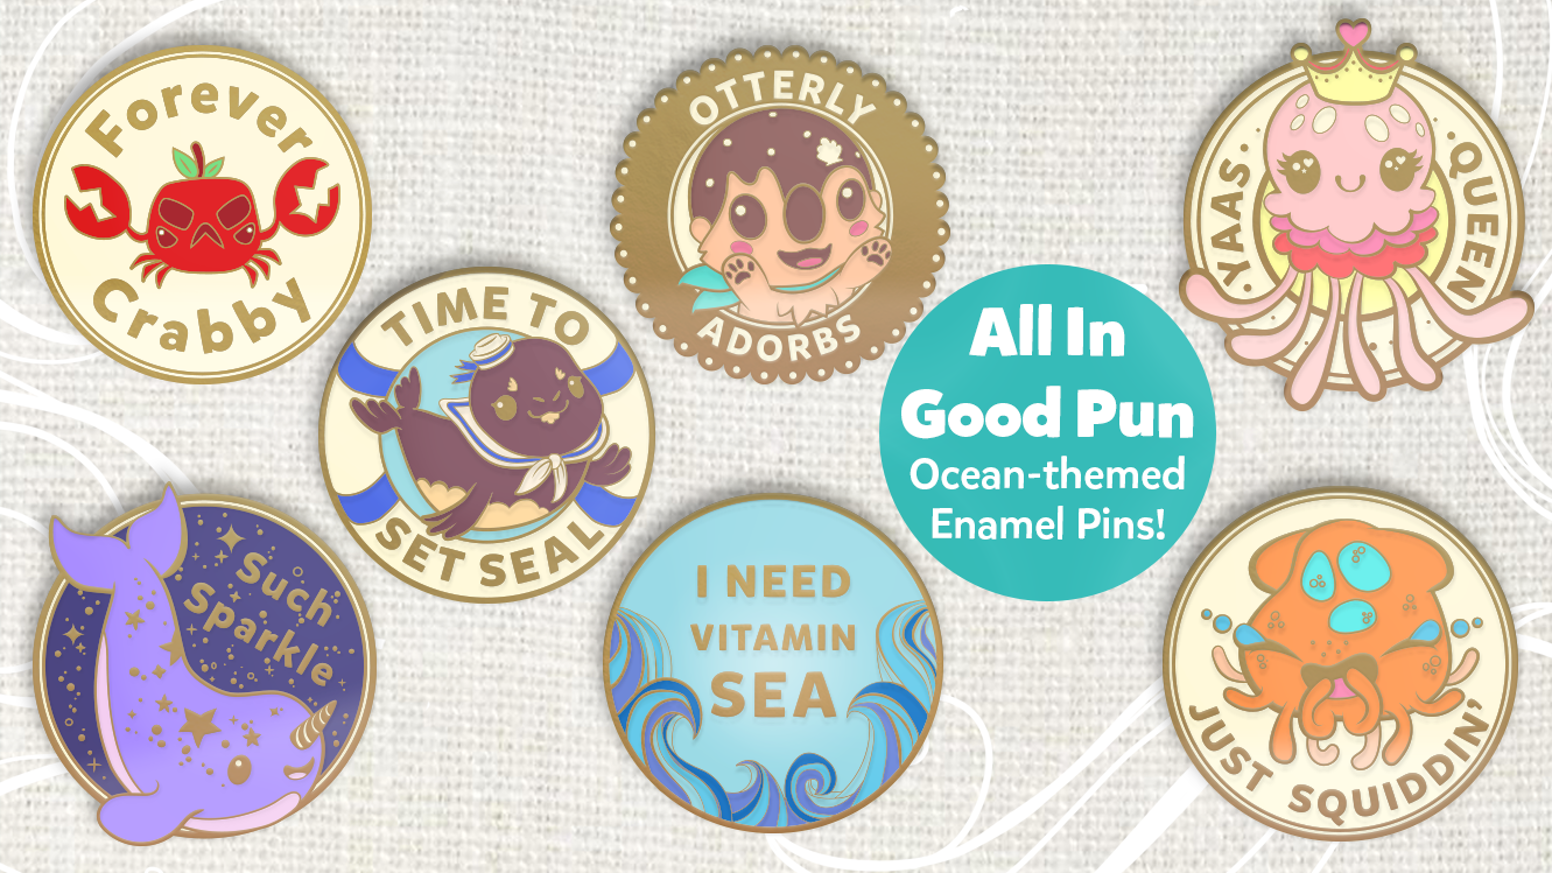 04e87f8fdc inki-Drop is creating original enamel pin designs with fun and funky  wordplay slogans.